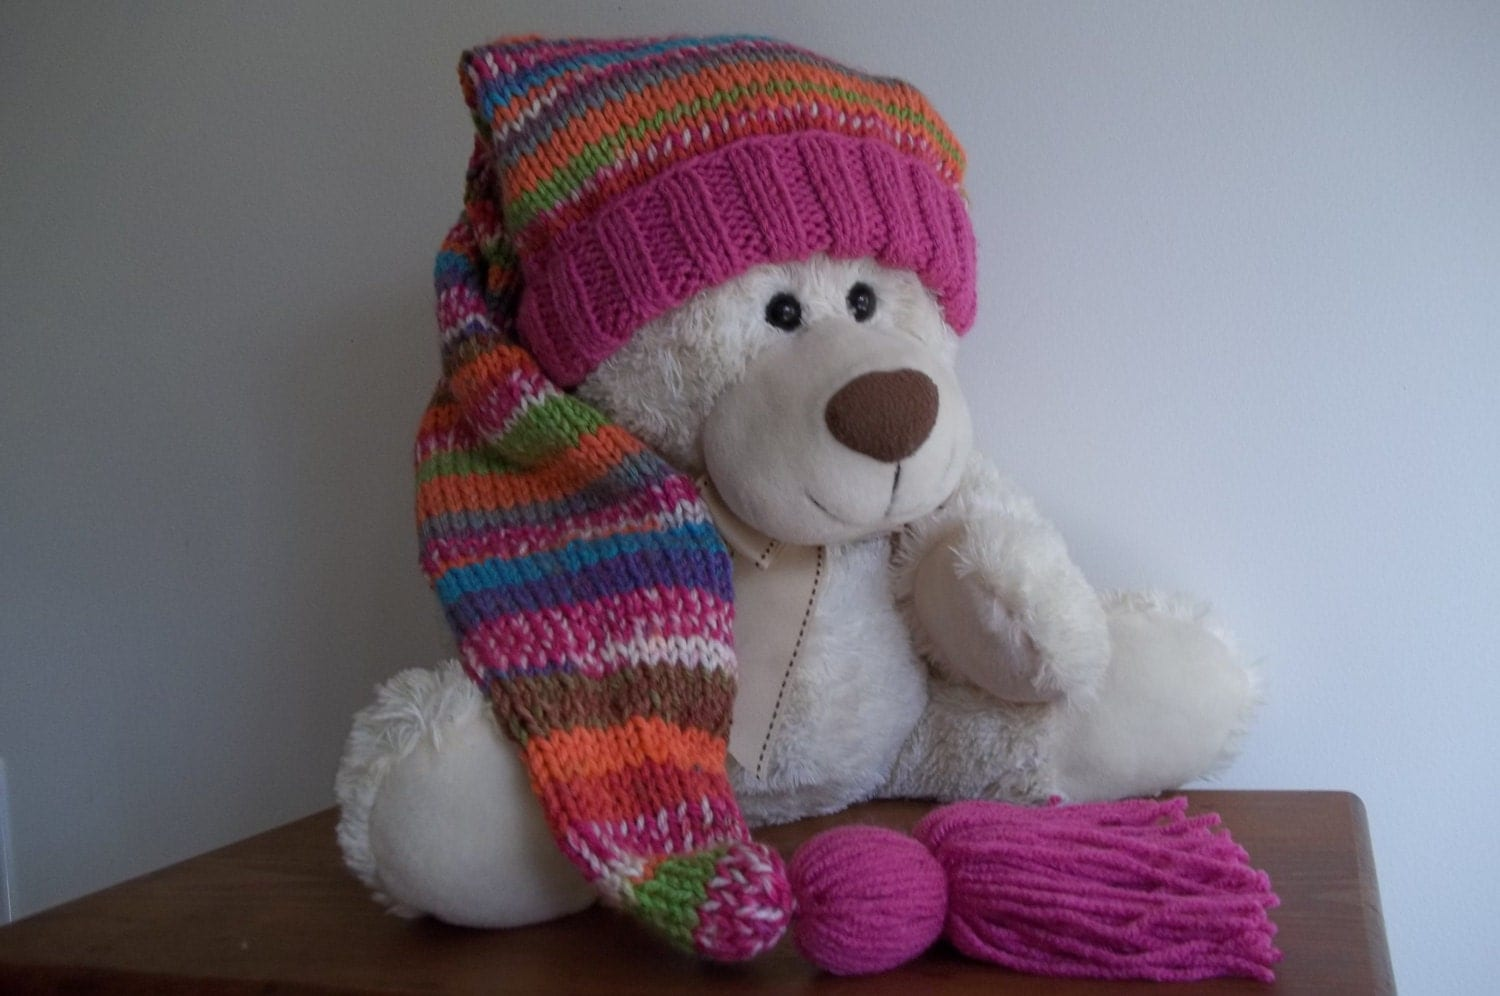 Jun 20, · This One Skein Stocking Hat is one of the most adorable crocheted hat patterns ever. Your kids will look absolutely precious whenever they wear it. This crocheted hat would make a great holiday gift for the special little elves in your life/5(4).